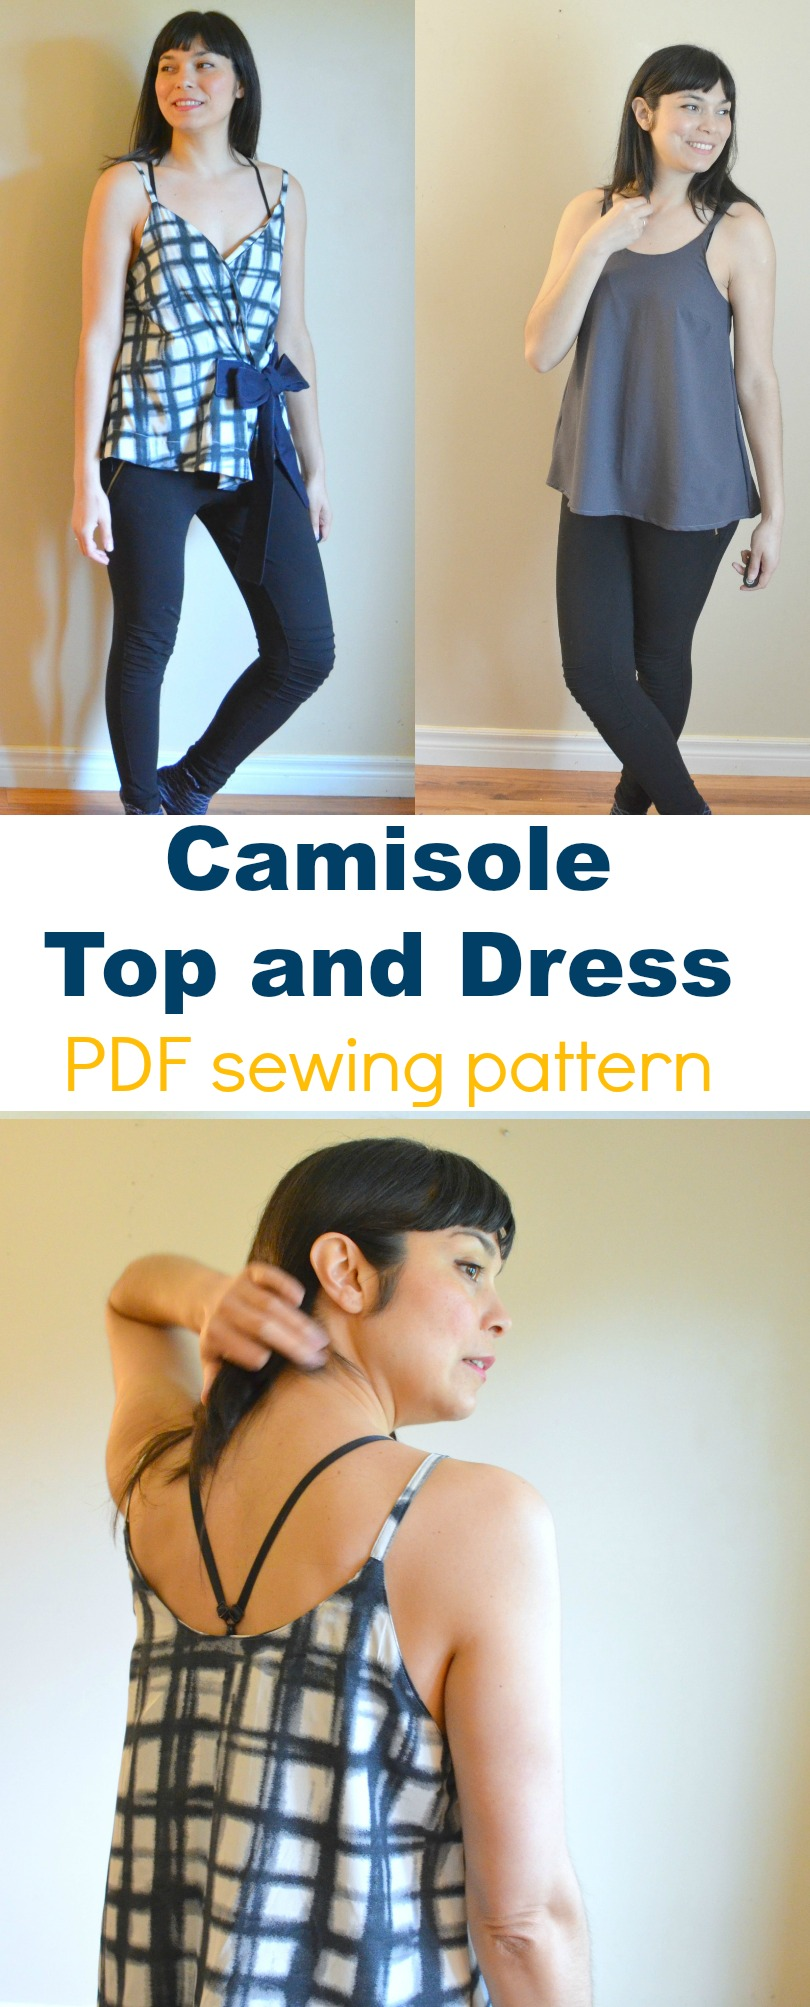 Introducing the Camisole Top and Dress PDF sewing pattern